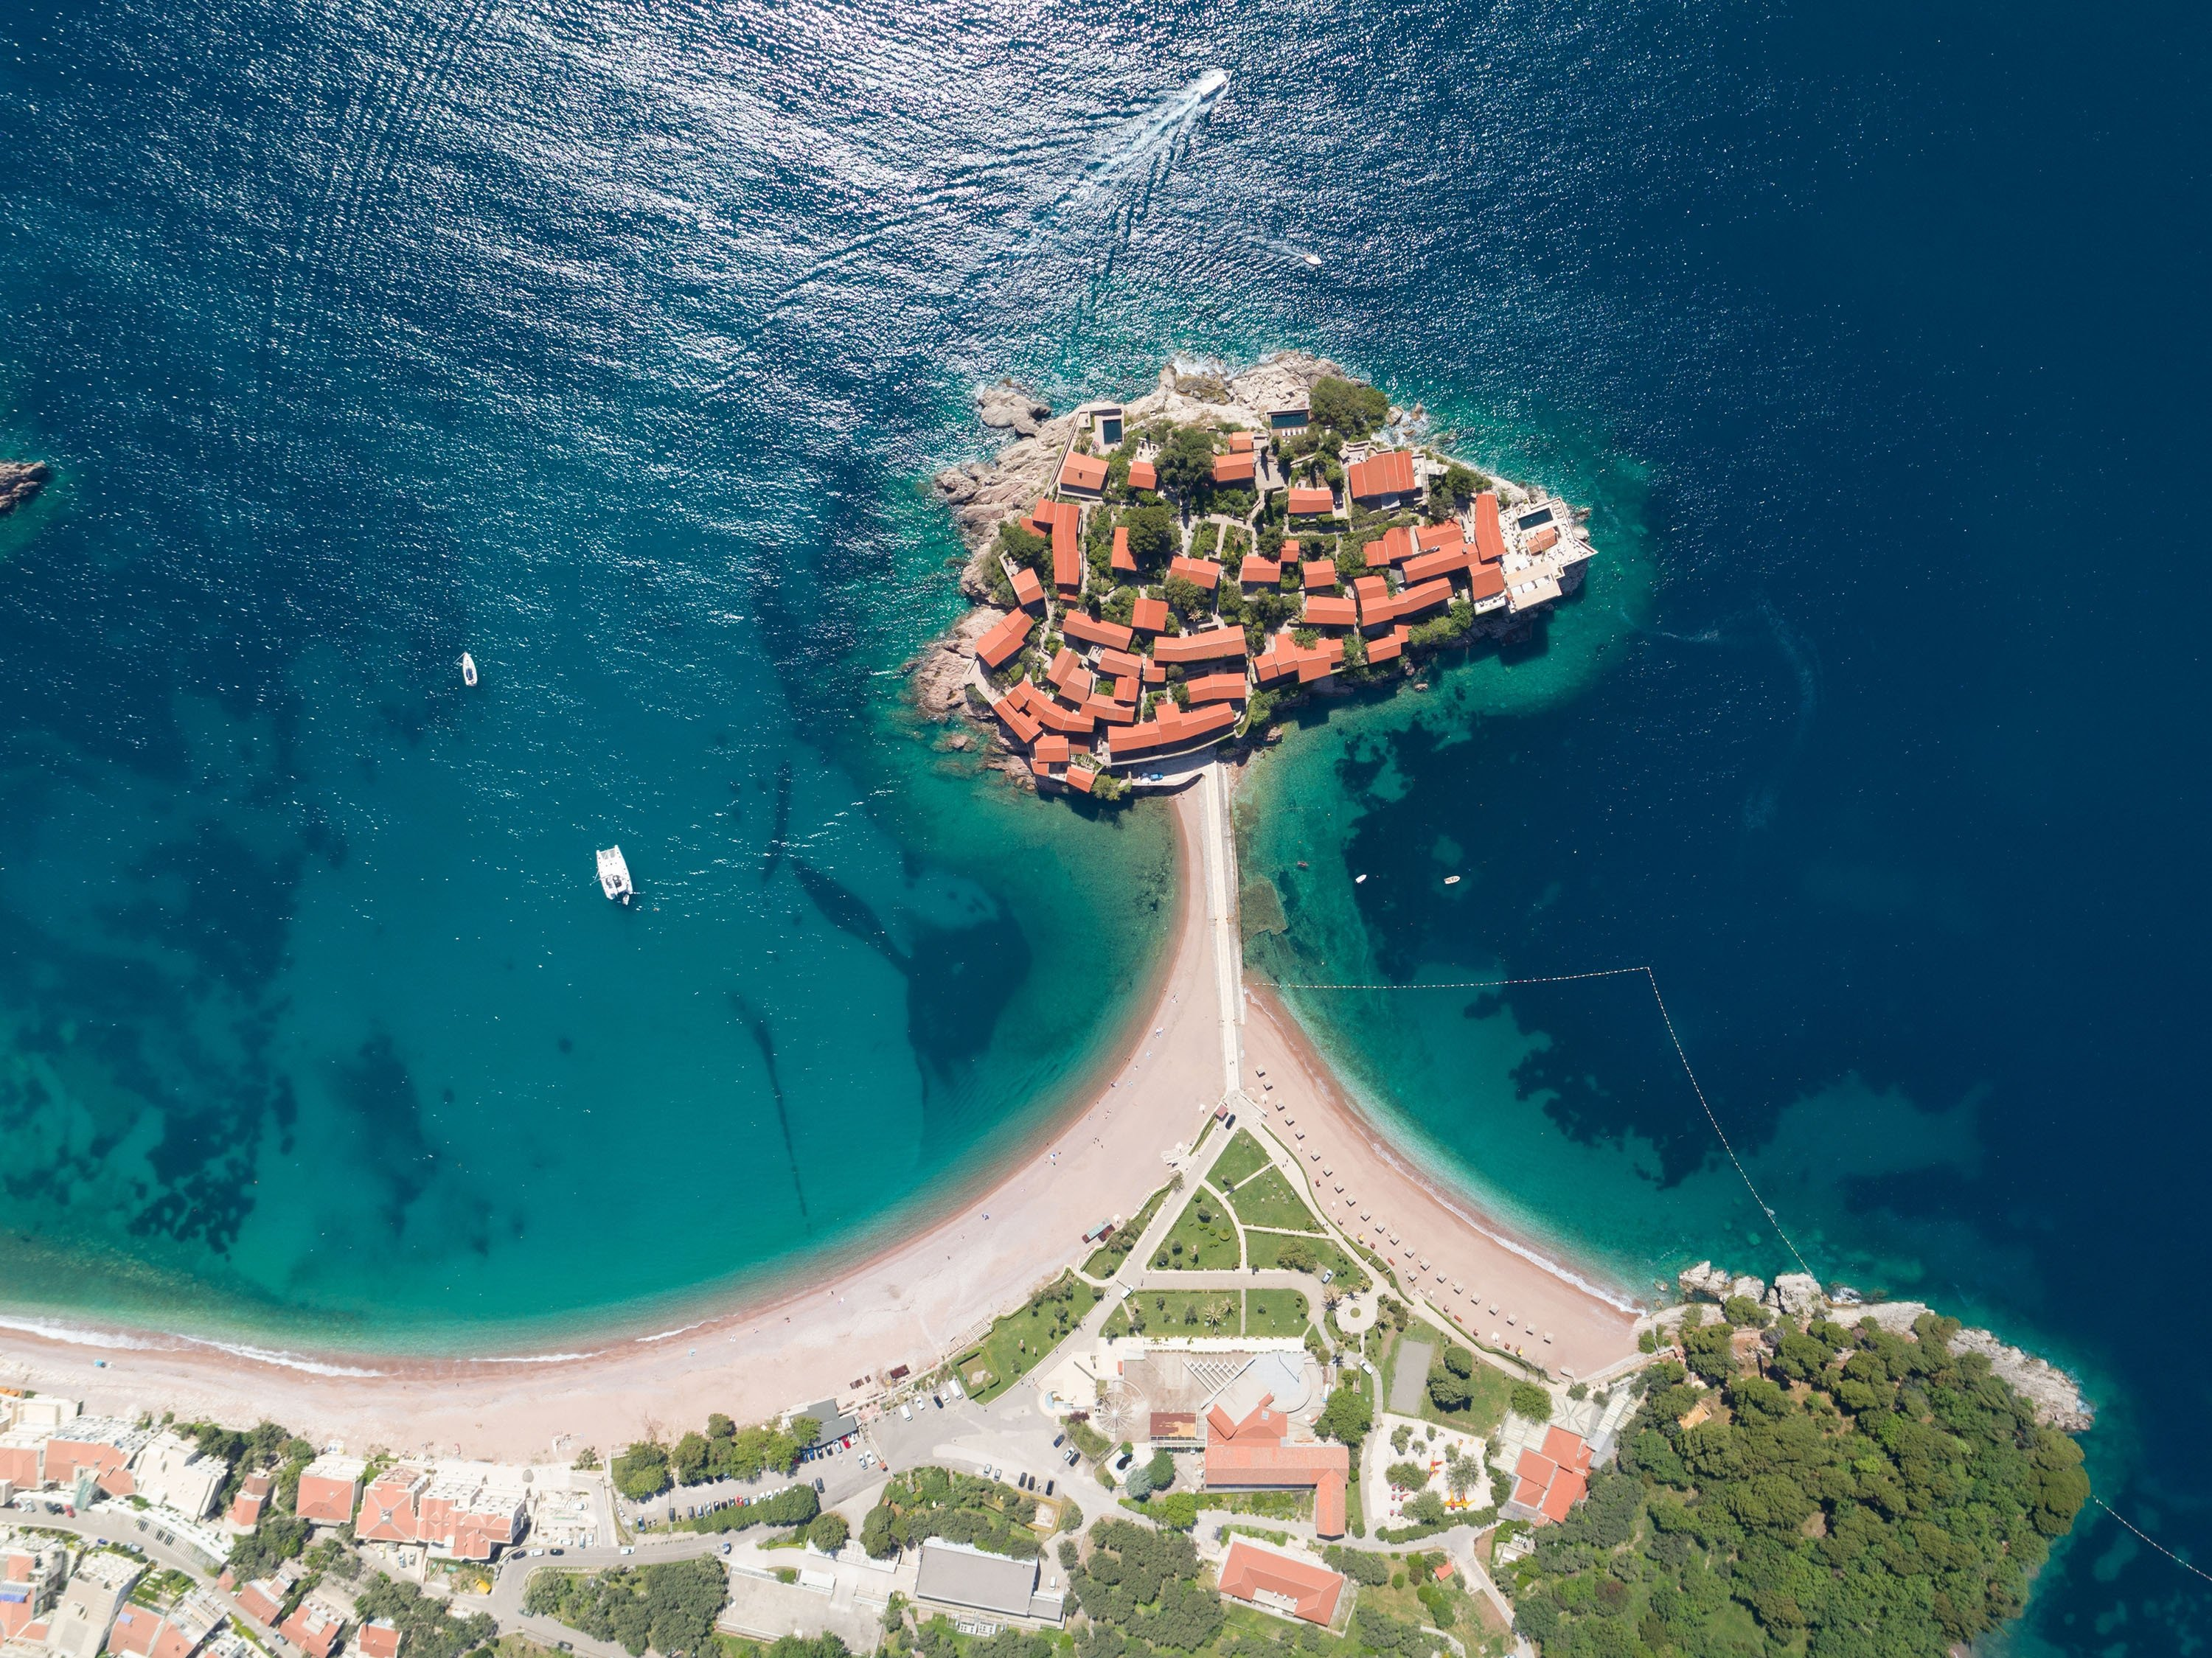 The Adriatic Sea surrounds the small Sveti Stefan islet next to the mainland of Montenegro. (Shutterstock Photo)